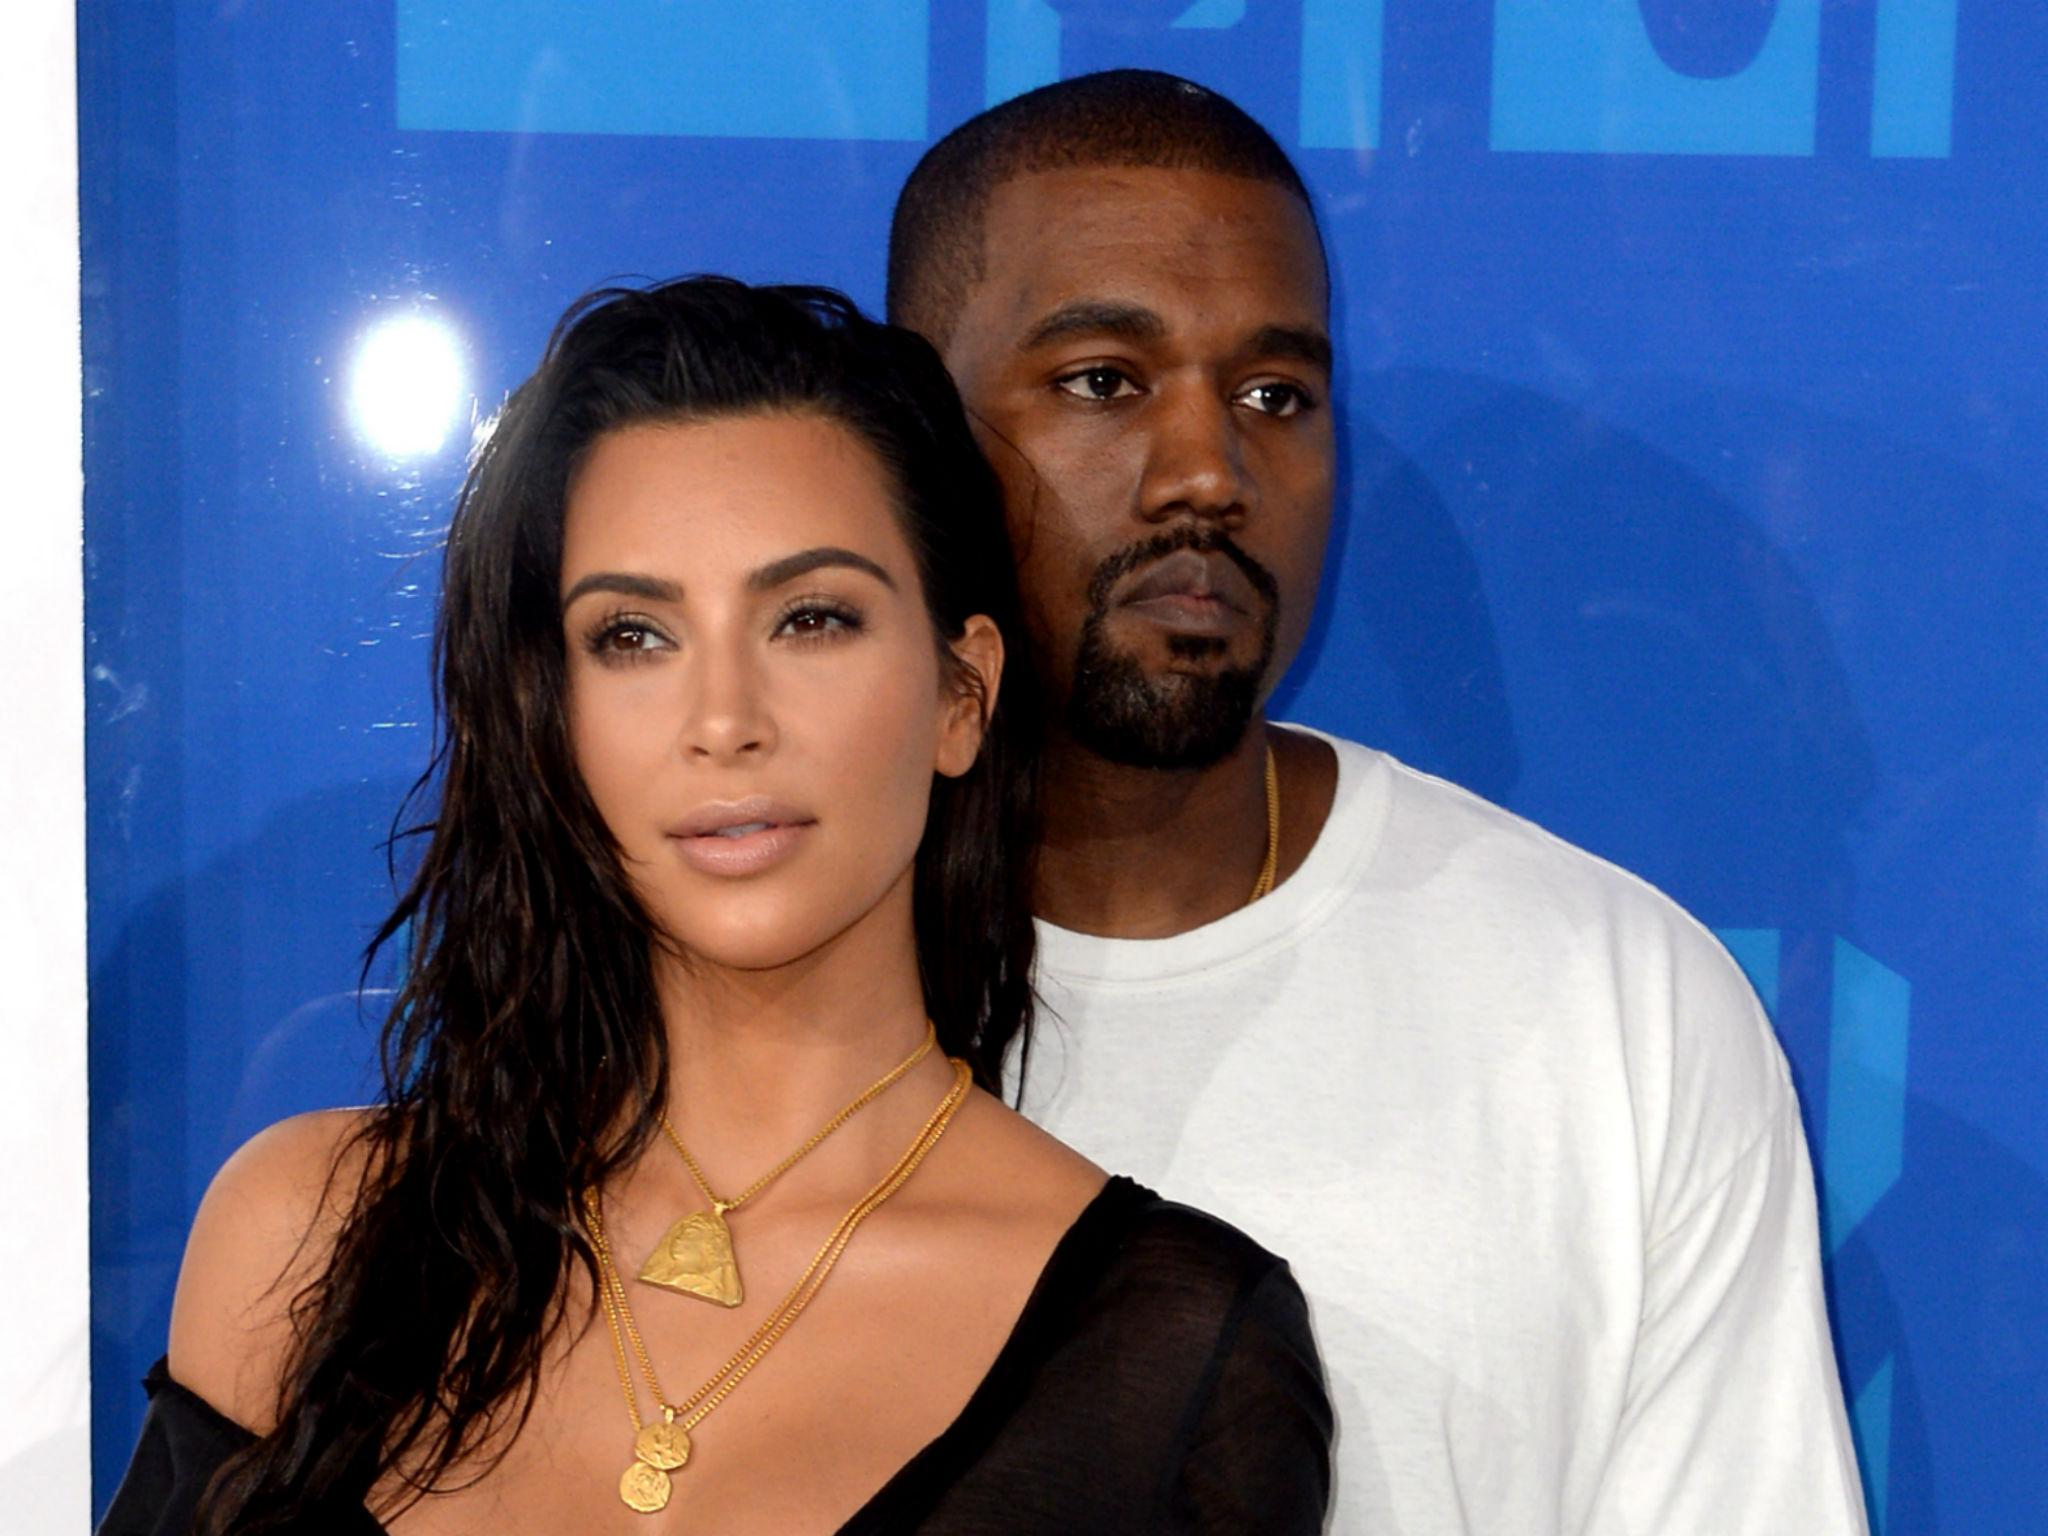 Kim Kardashian and Kanye West stayed in $30 million apartment for free